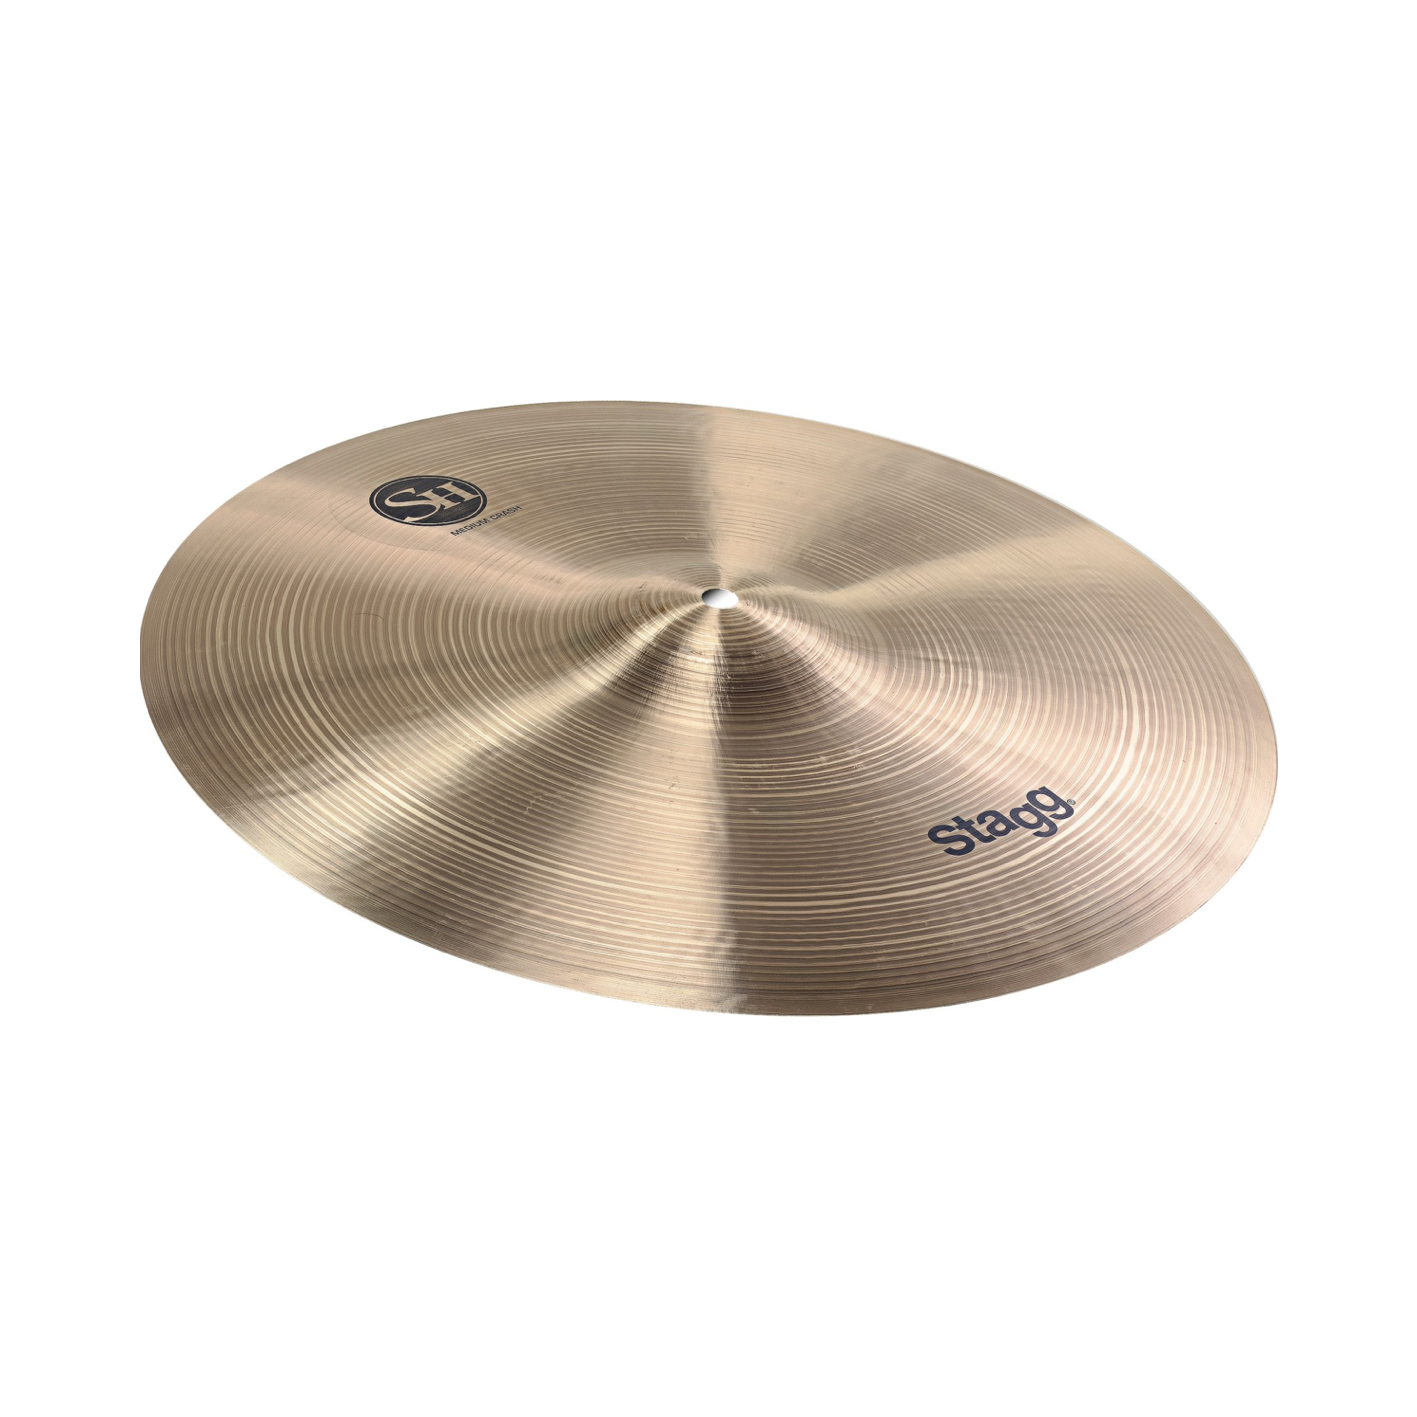 Stagg SH Medium Crash Cymbal (various sizes)